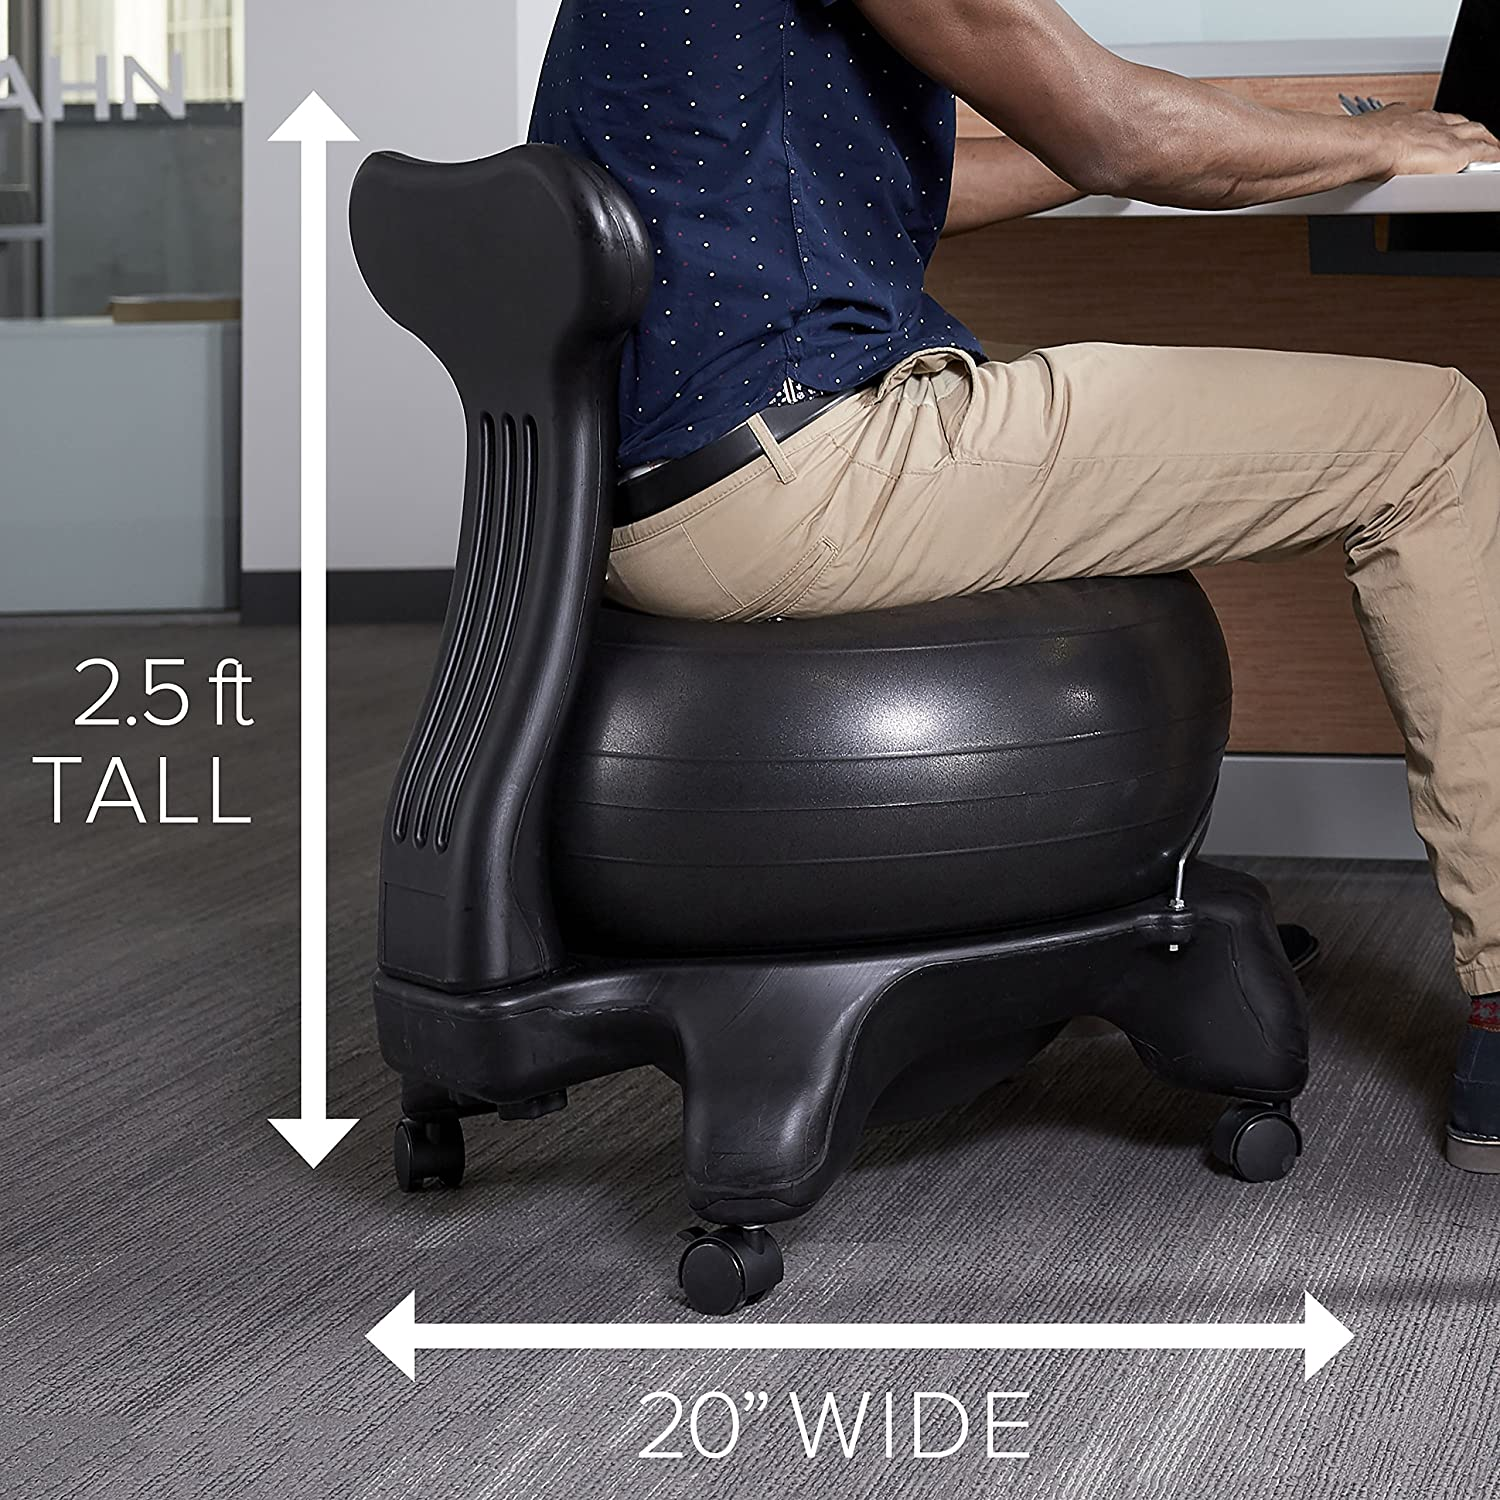 Stability Ball Desk Chair: Best Balance Ball Chairs For Tall People